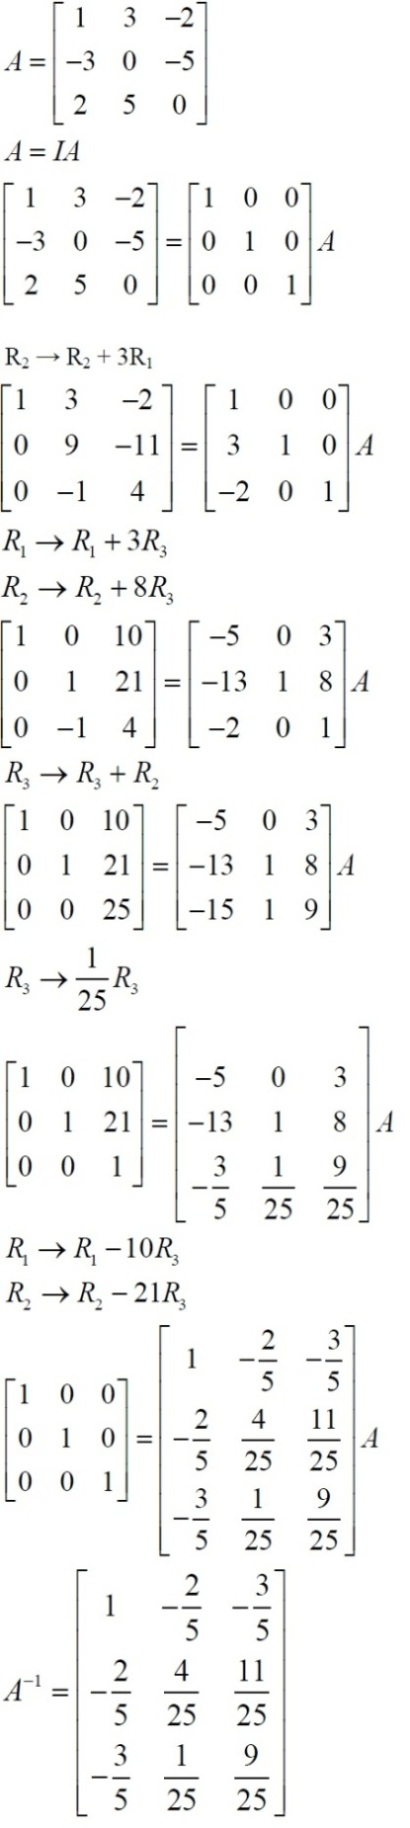 NCERT Solutions for Class 12 Maths: Chapter 3: Matrices (Exercise 3.4, Solution 16)